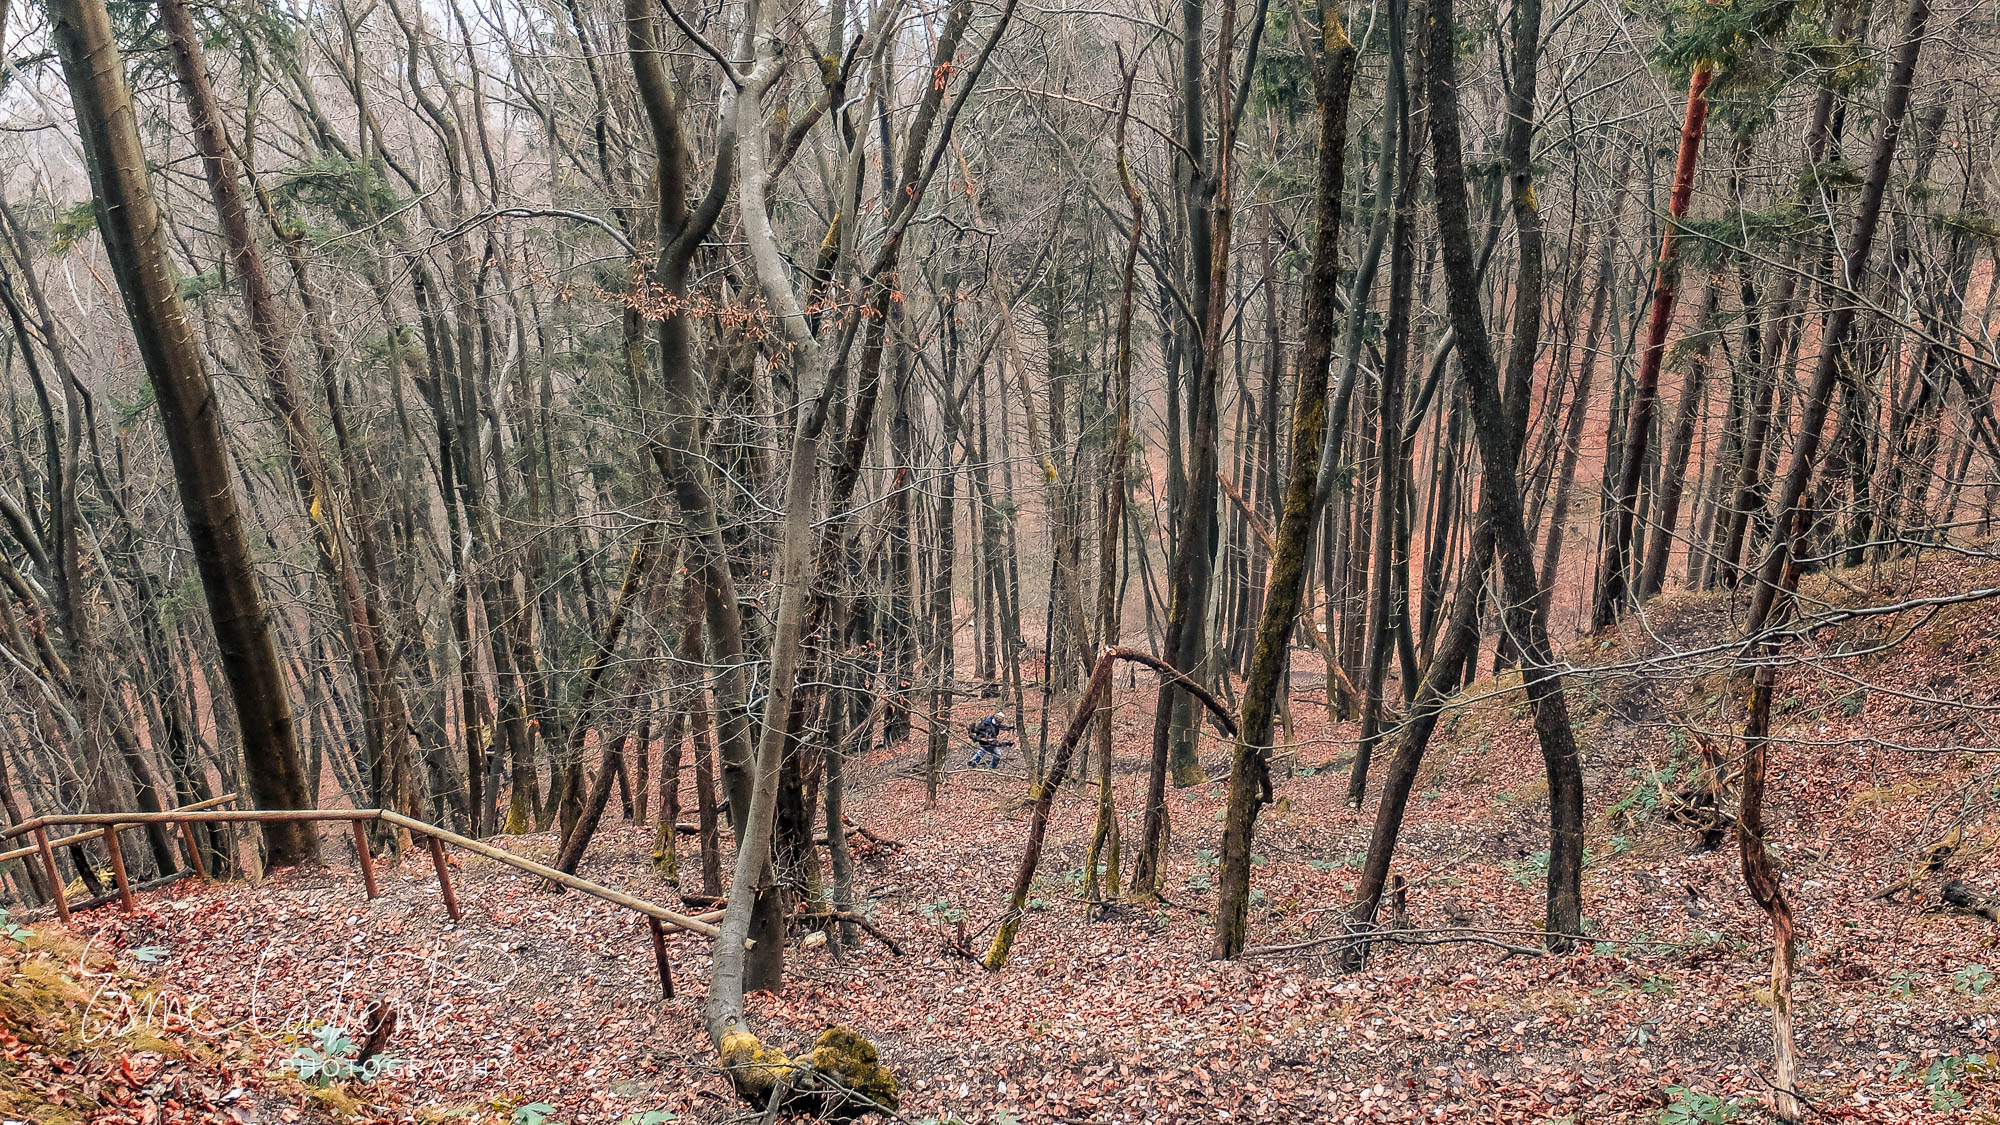 The naked forests give way to winter.